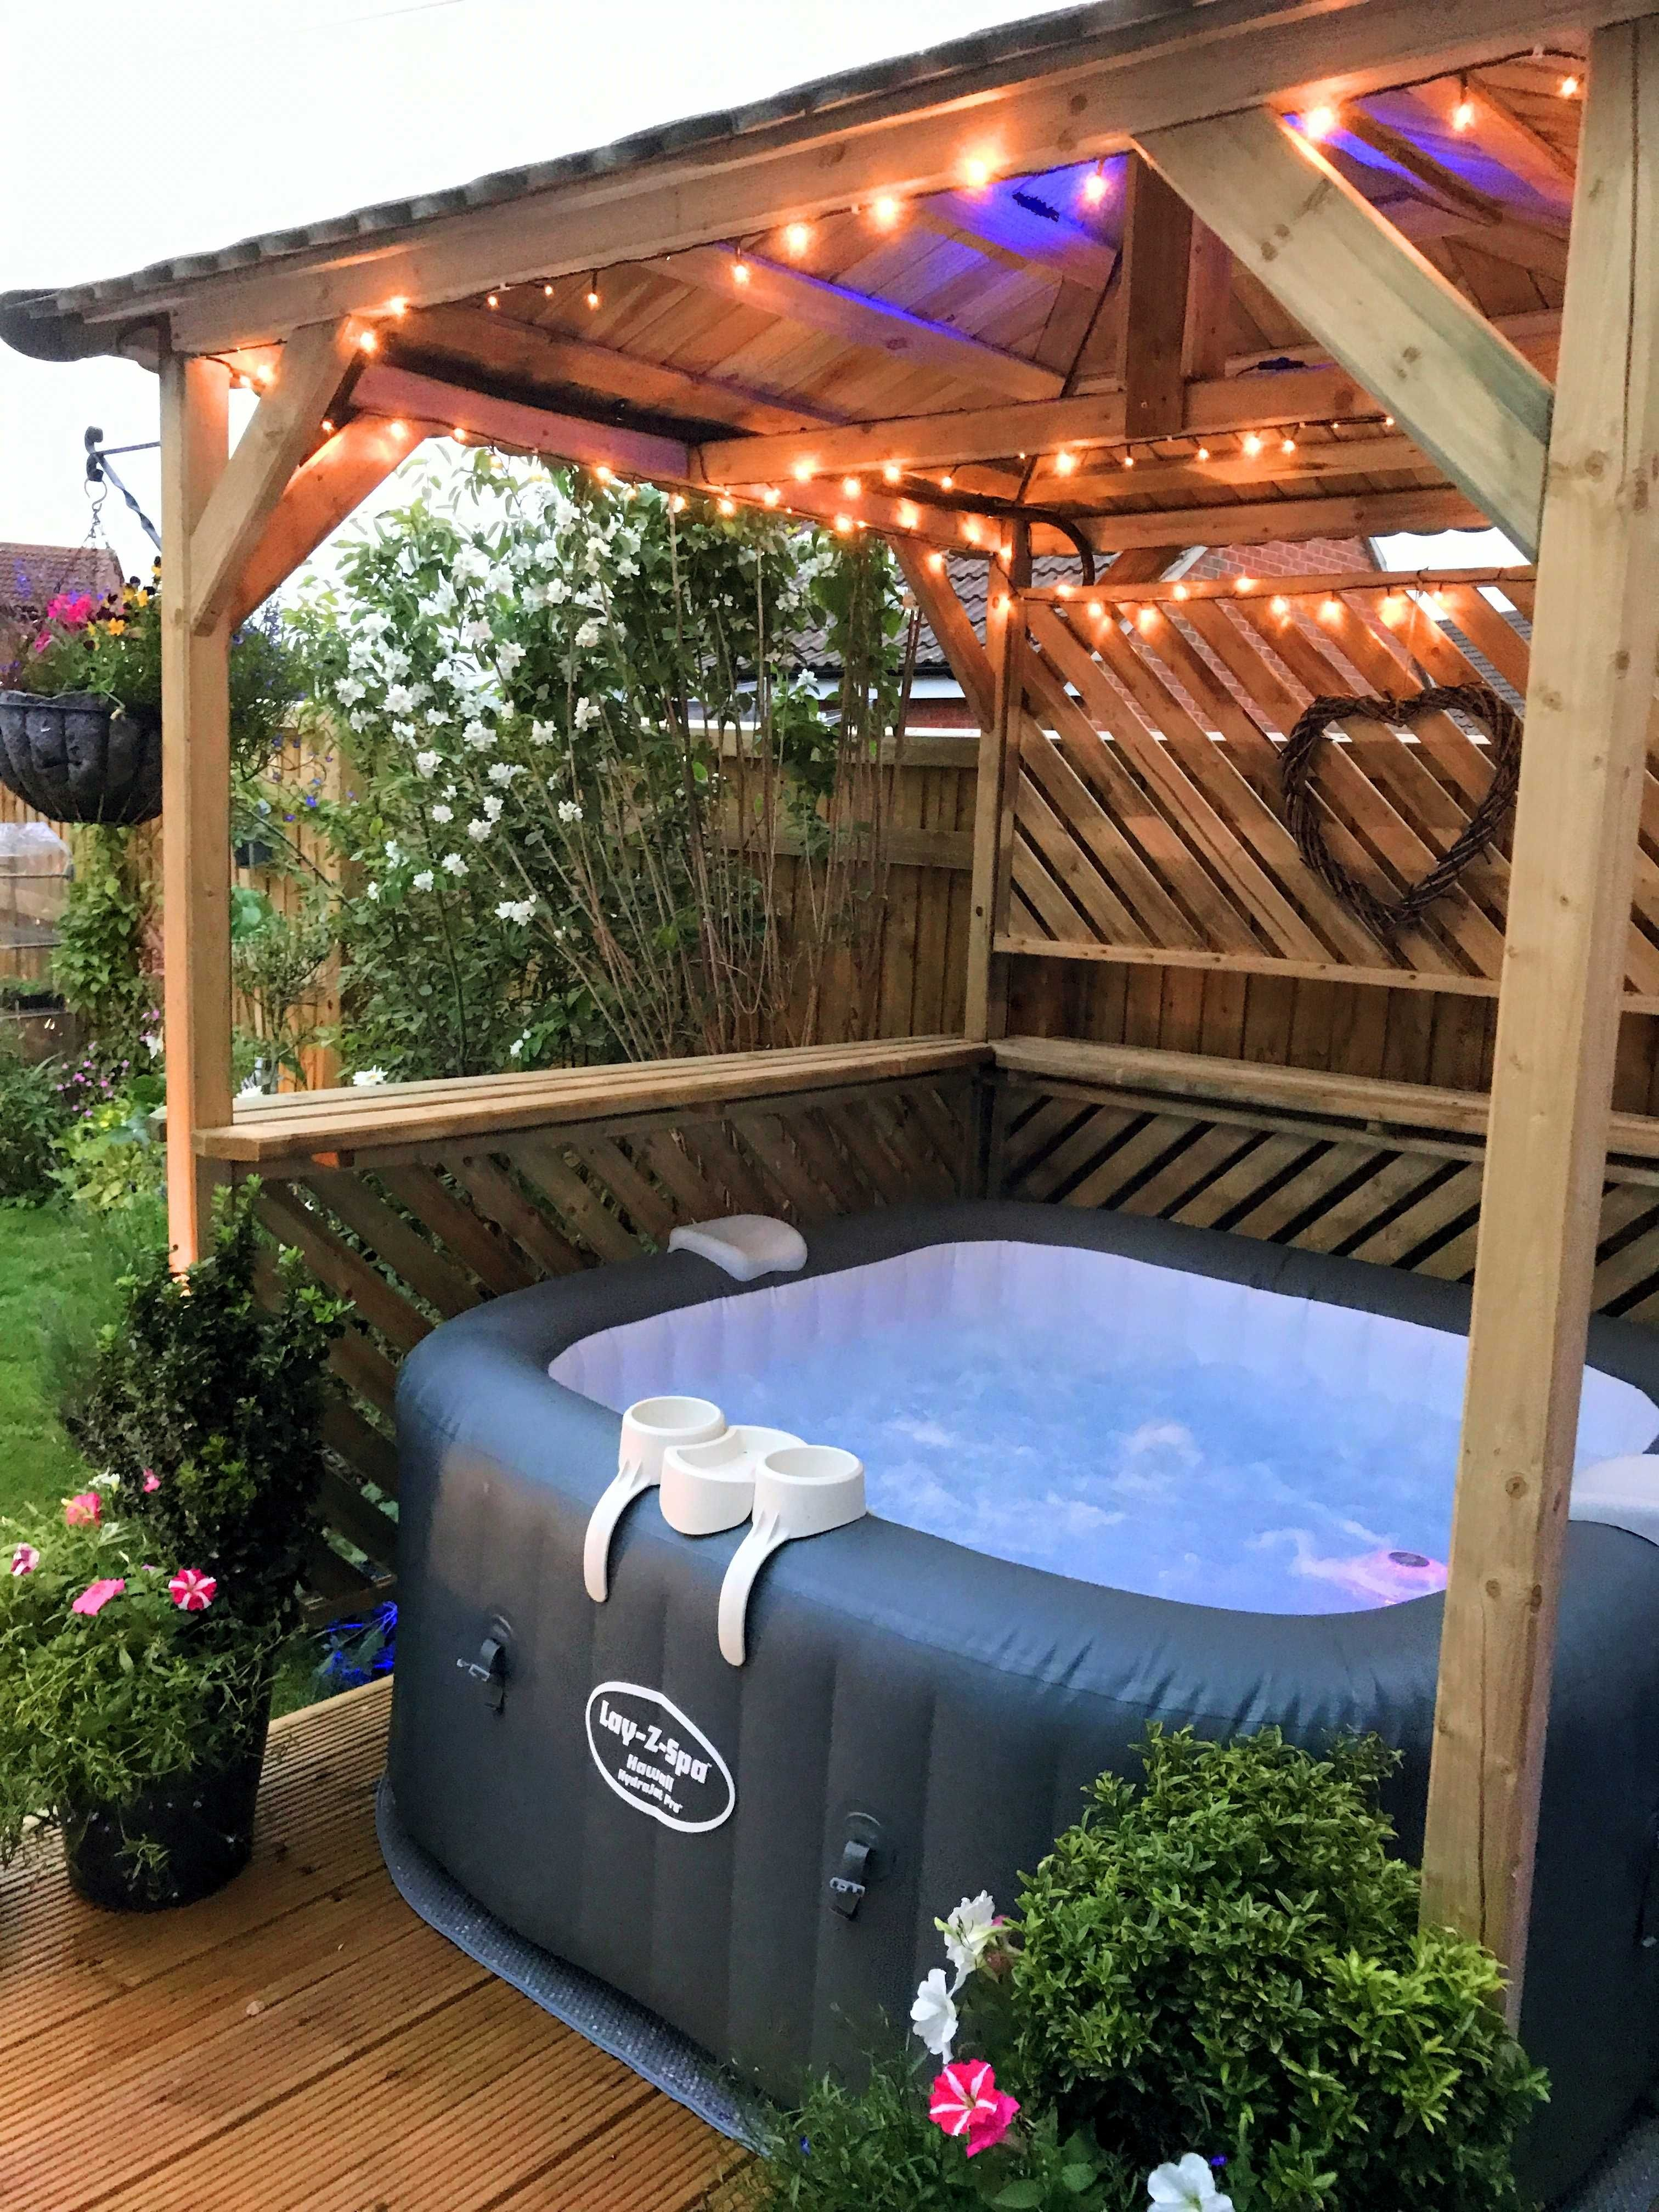 Blog Top 10 Hot Tub Shelters To Inspire You Hot tub